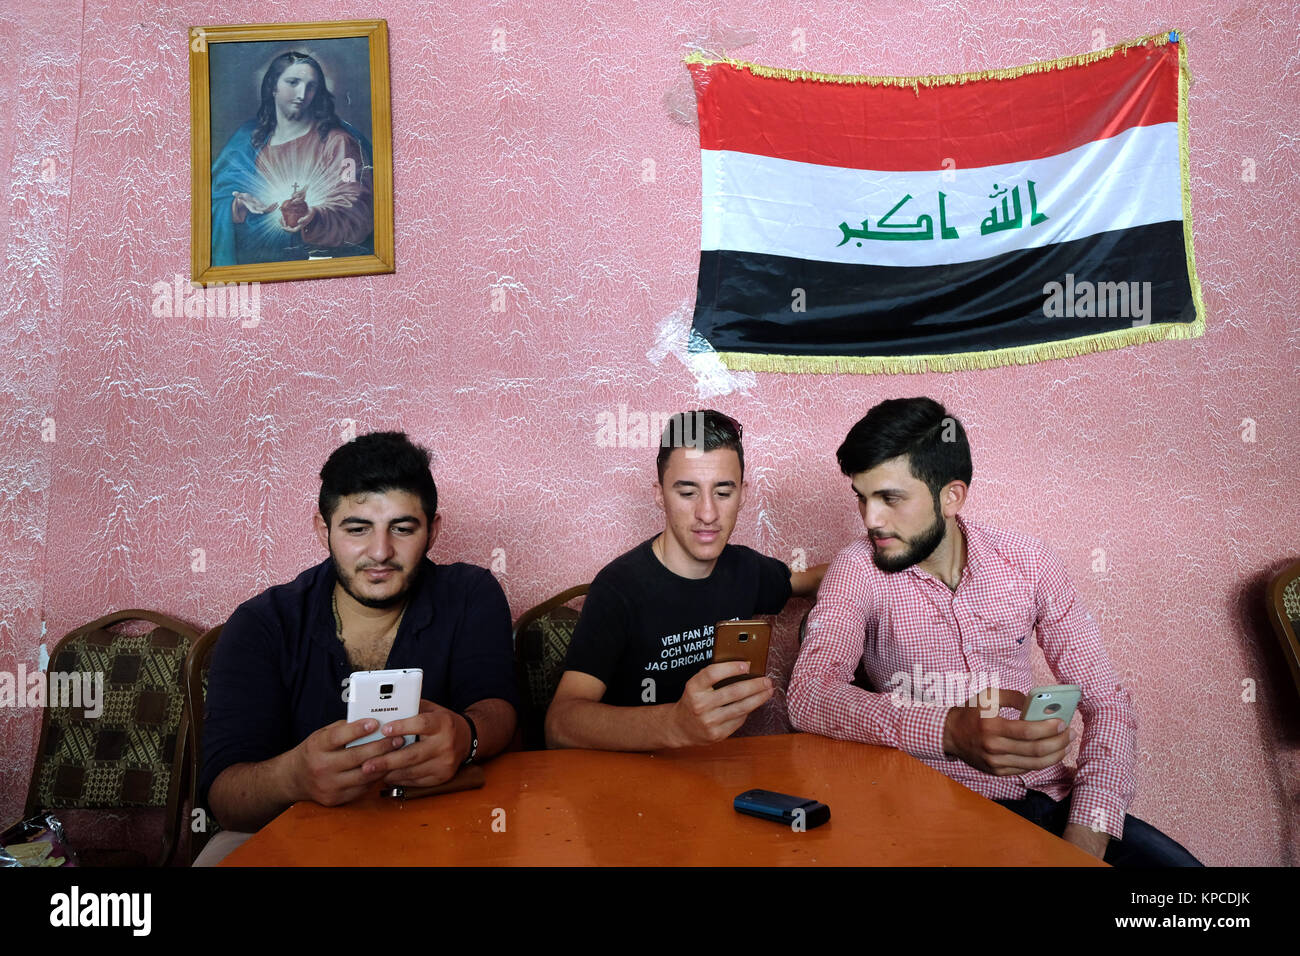 Iraqi flag and an image of Jesus Christ on a wall in an newly opened tearoom in the IS-liberated city of Karakosh, - Stock Image